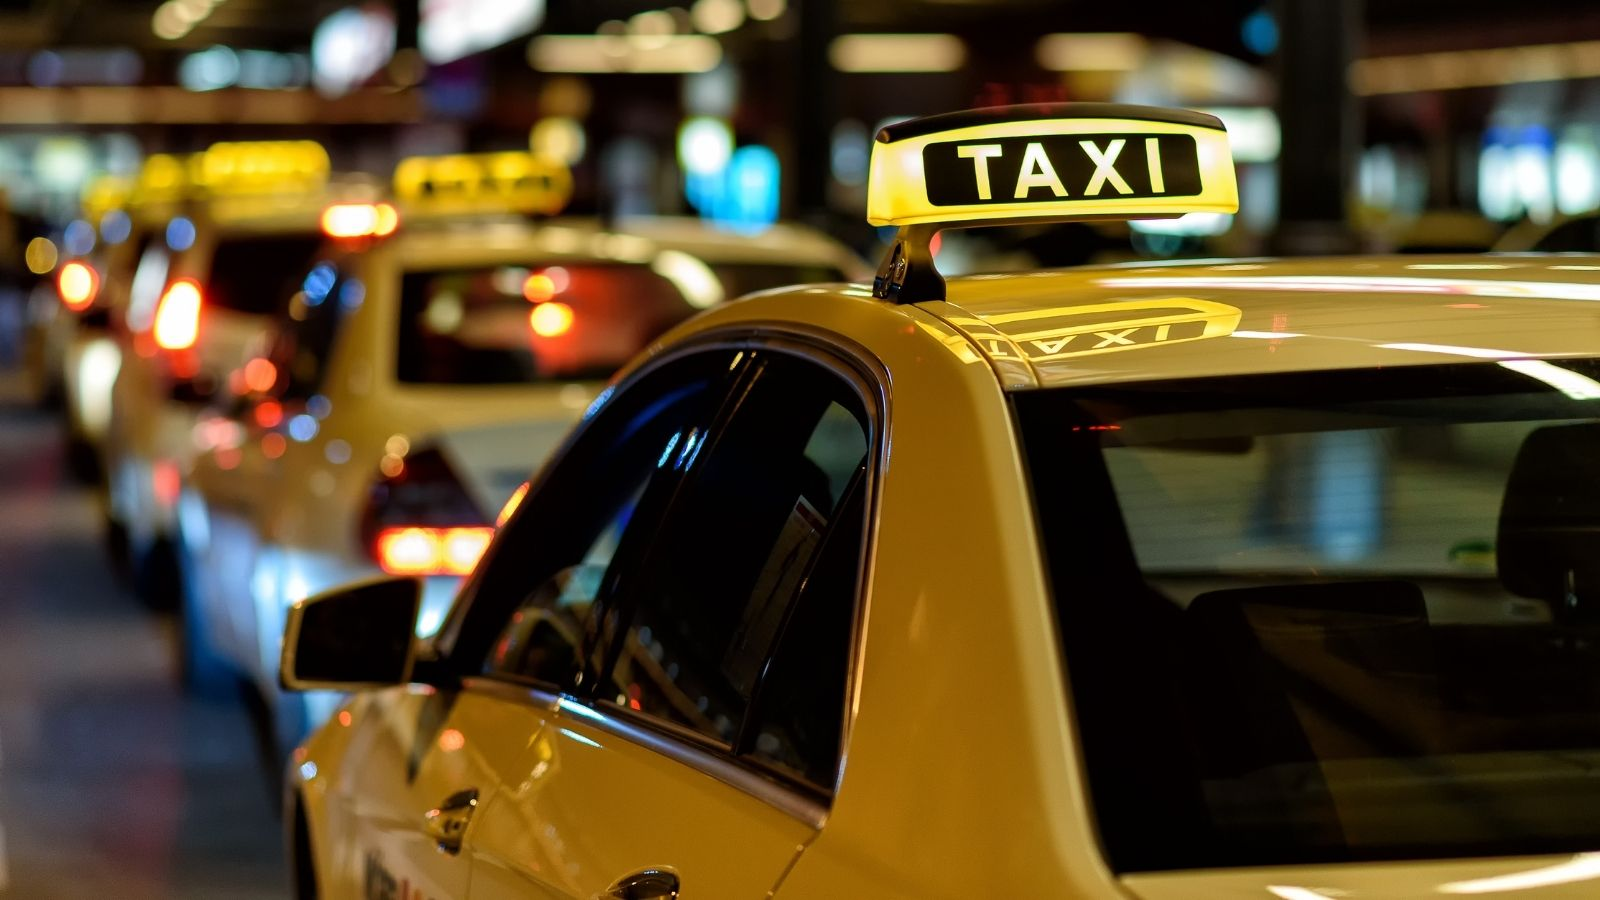 Fuel Cards UK: Fuel Card Benefits For Taxis